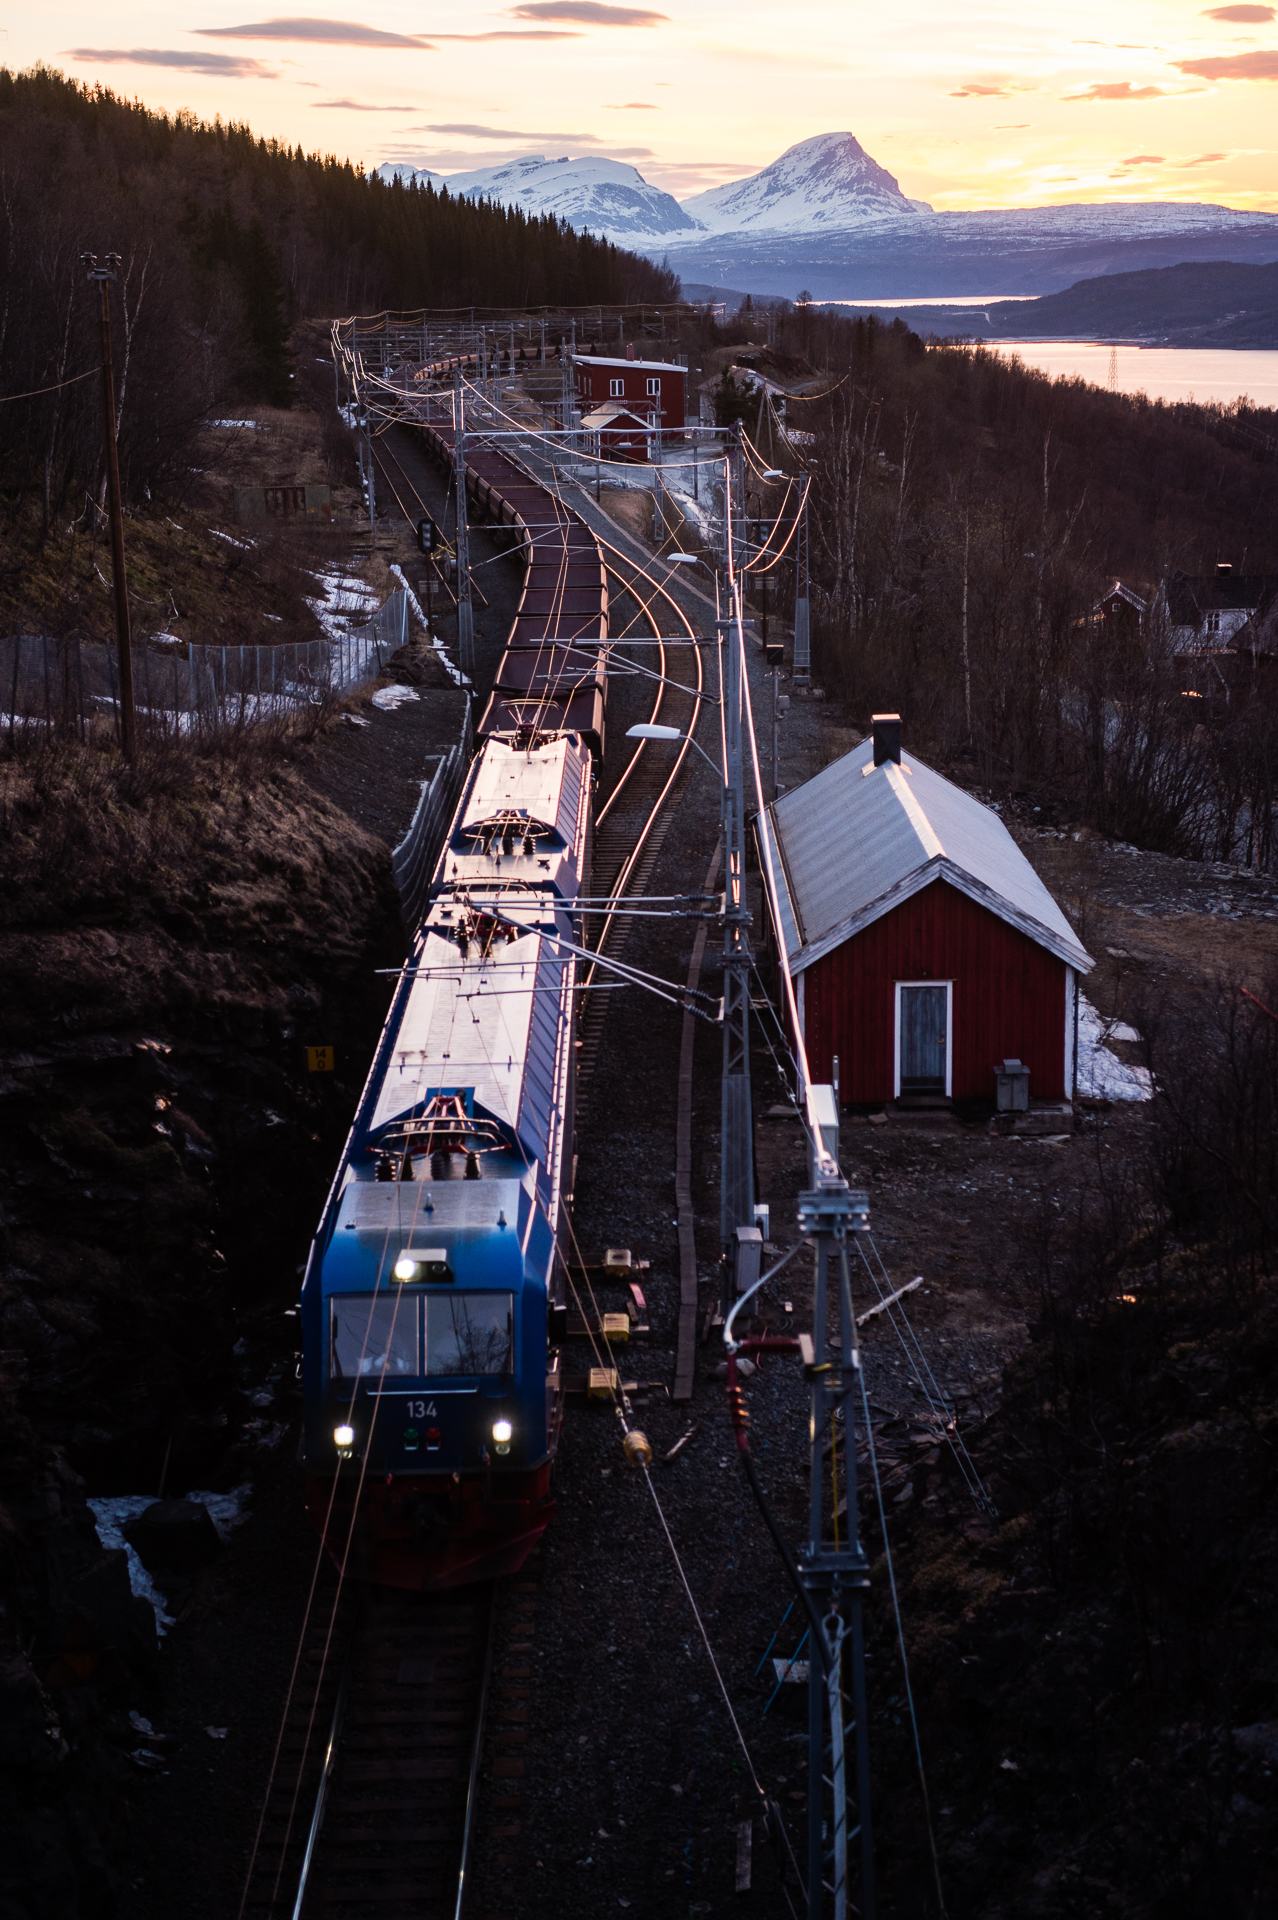 Narvik is inextricably linked to World War II because of the 68,000 tons of iron ore that arrives every day on electric trains from Sweden.